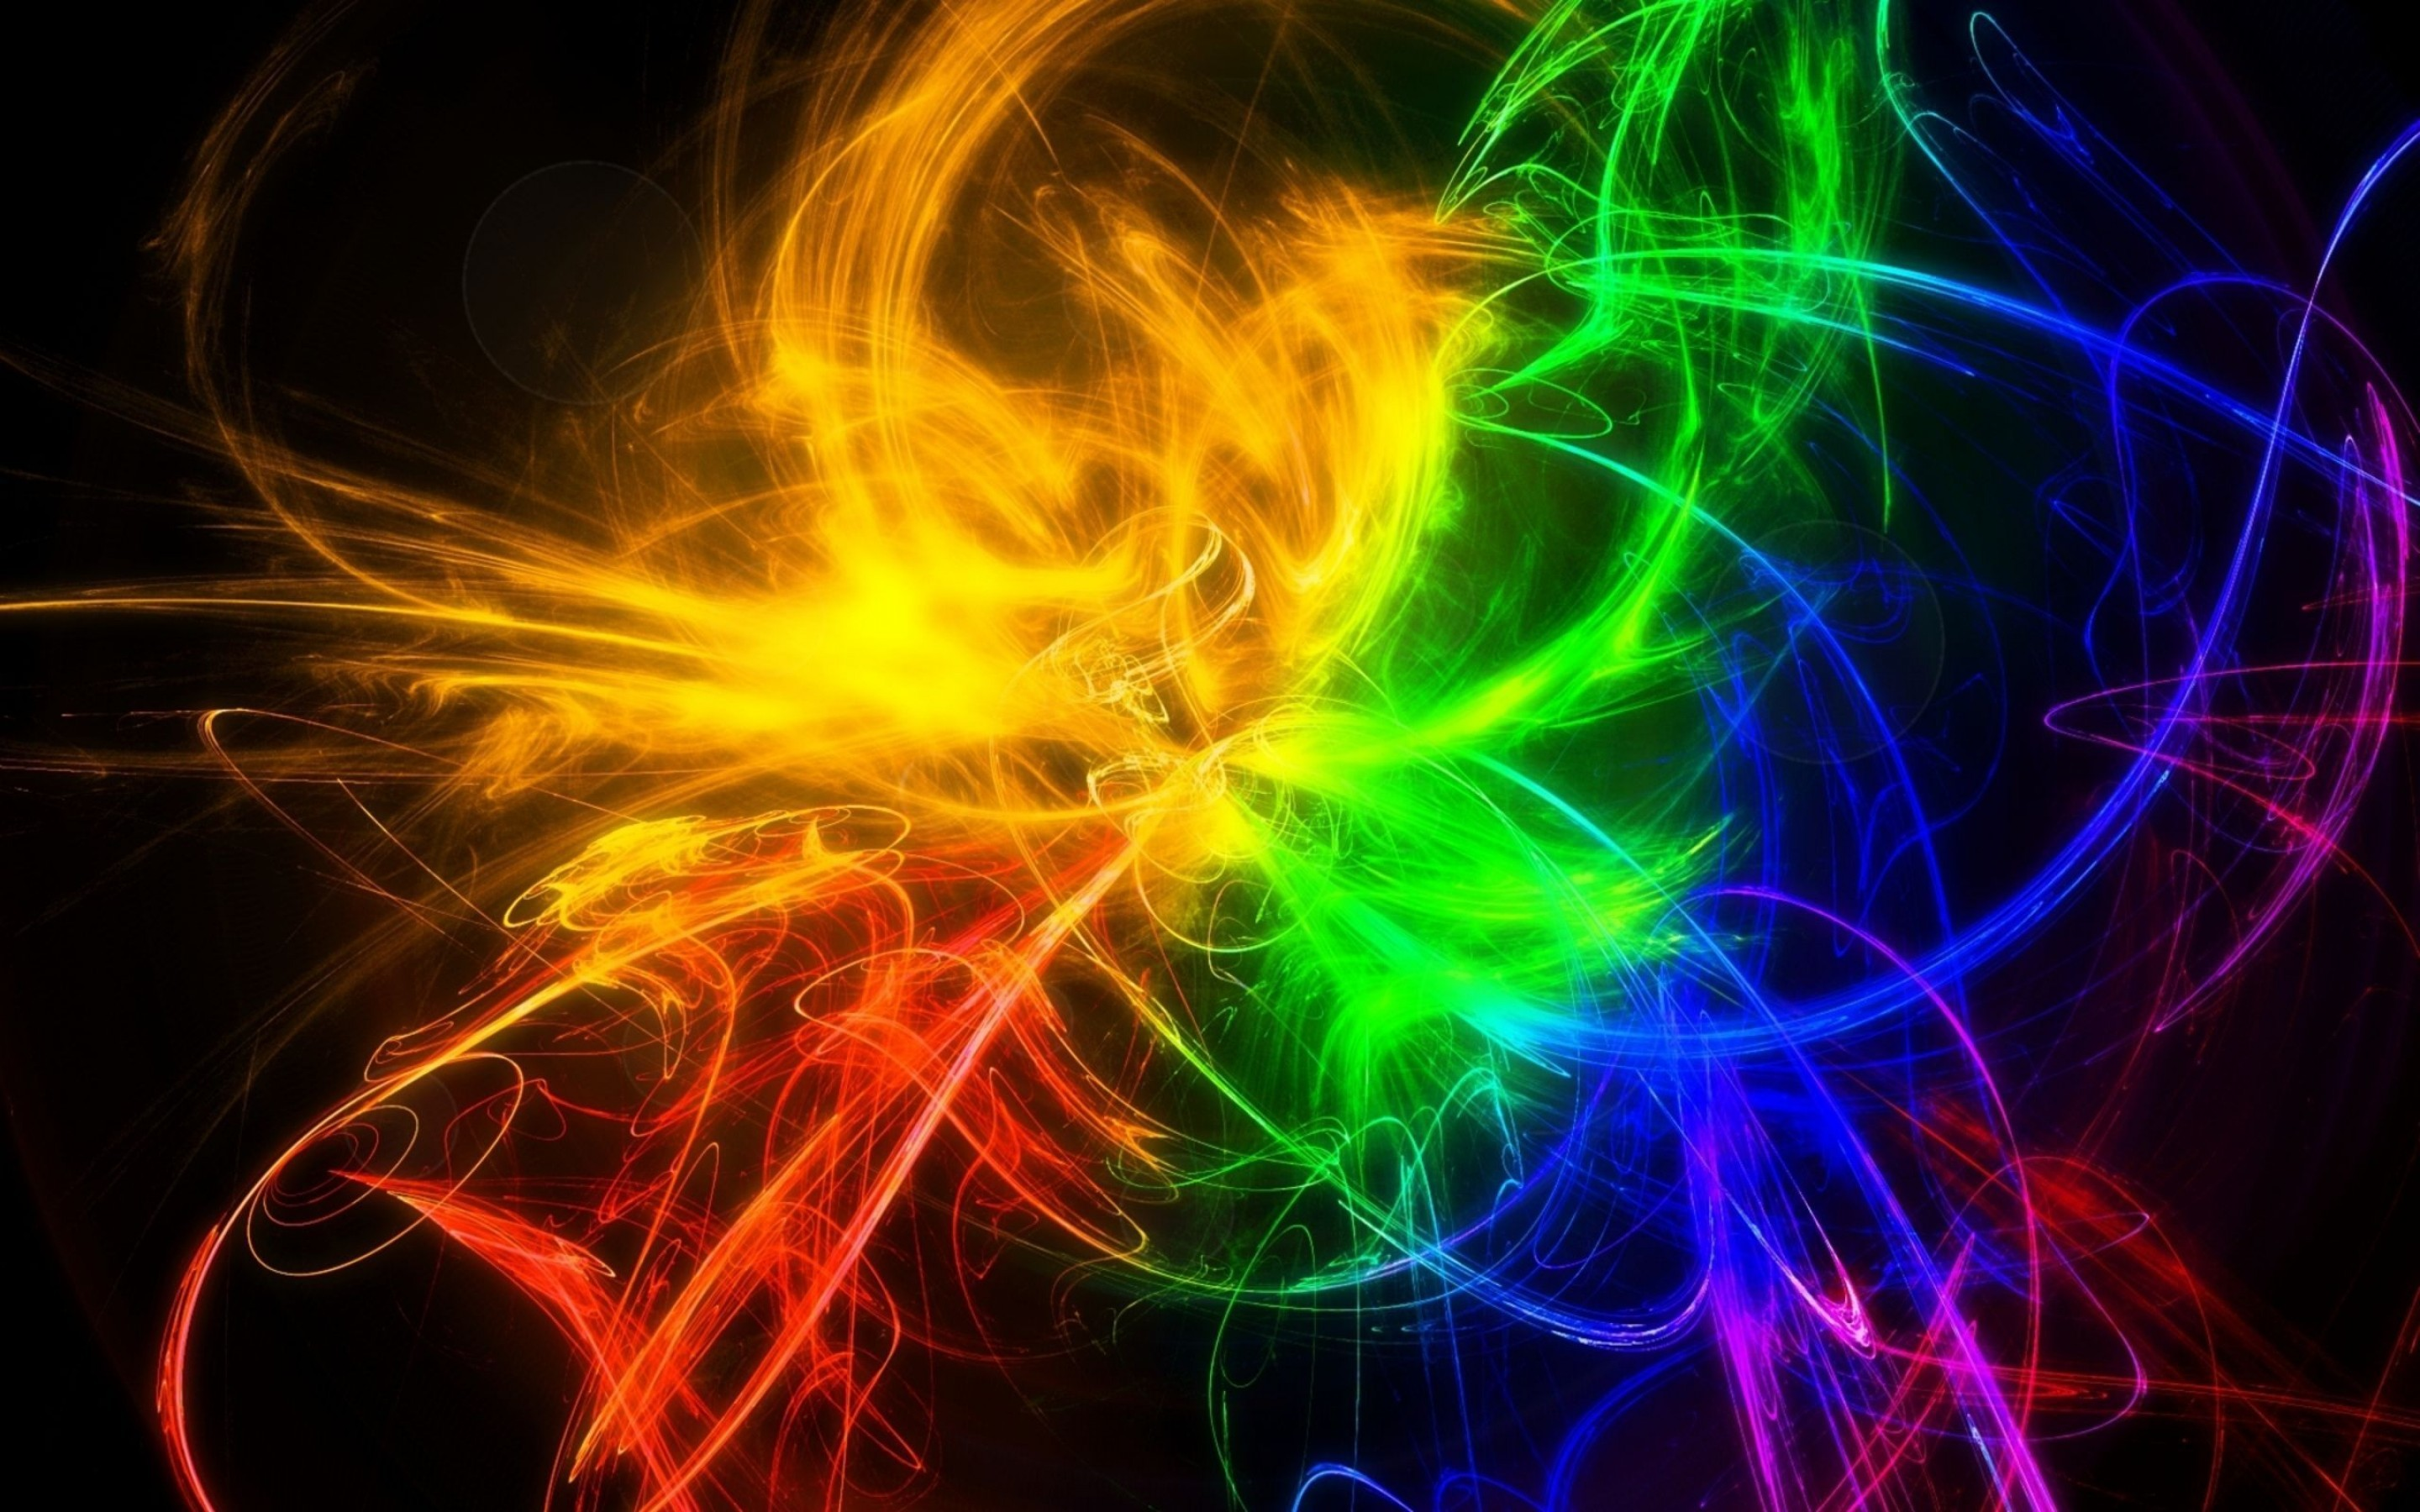 2880x1800 wallpaper.wiki-Colorful-smoke-backgrounds-hd-PIC-WPB0012314